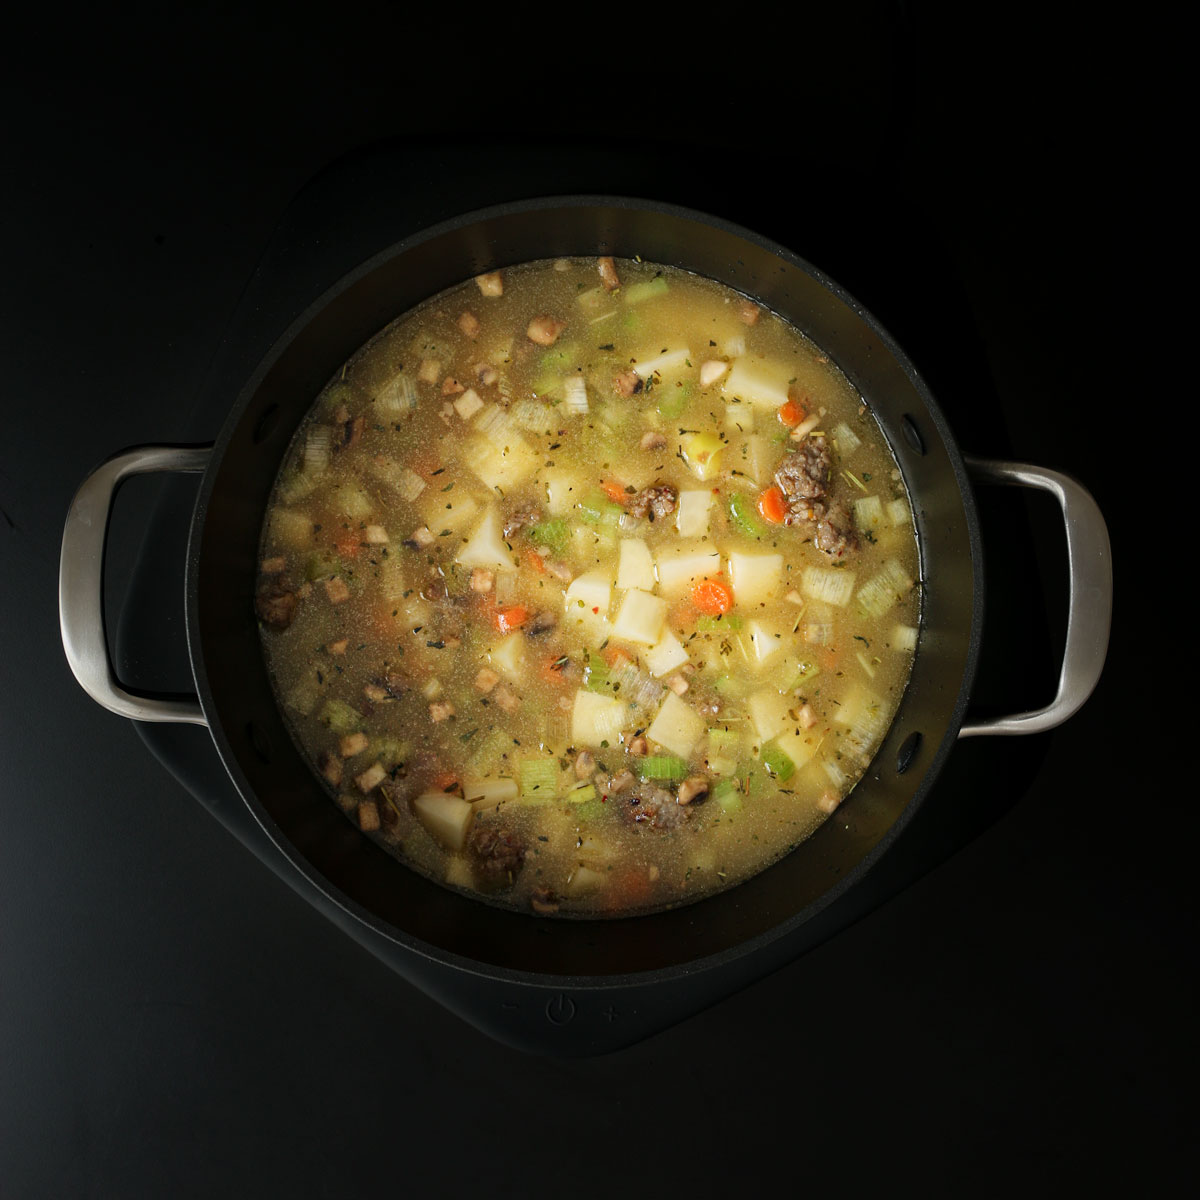 all the ingredients in the pot simmering.